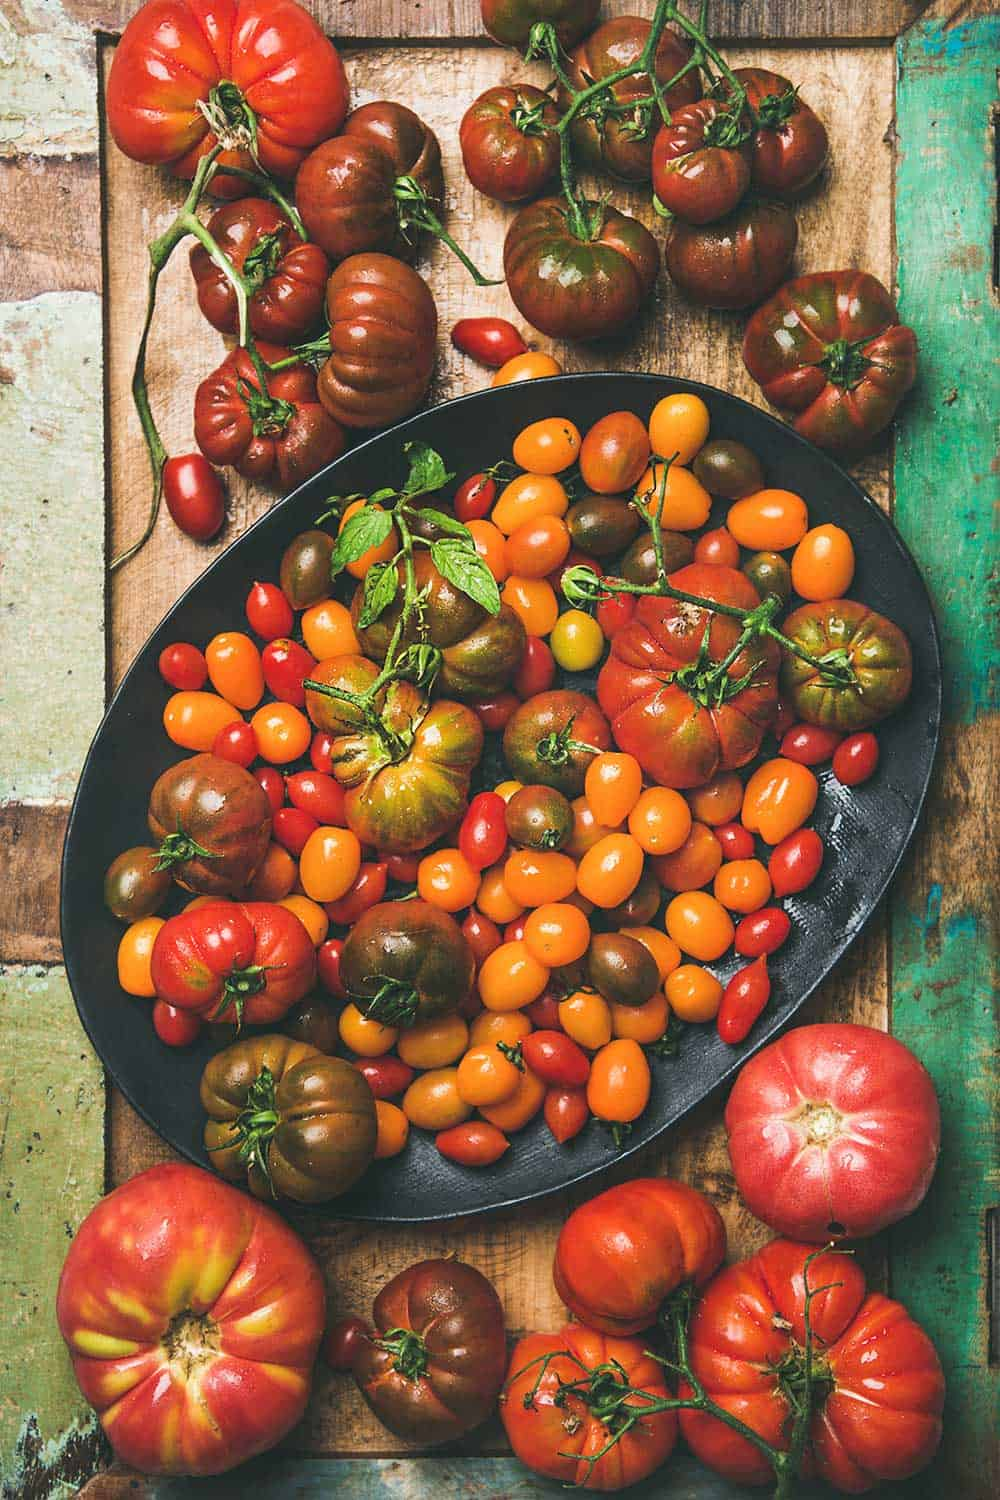 A bowl filled with and surrounded by a large variety of types of tomatoes including cherry, beefsteak, heirloom, and roma.